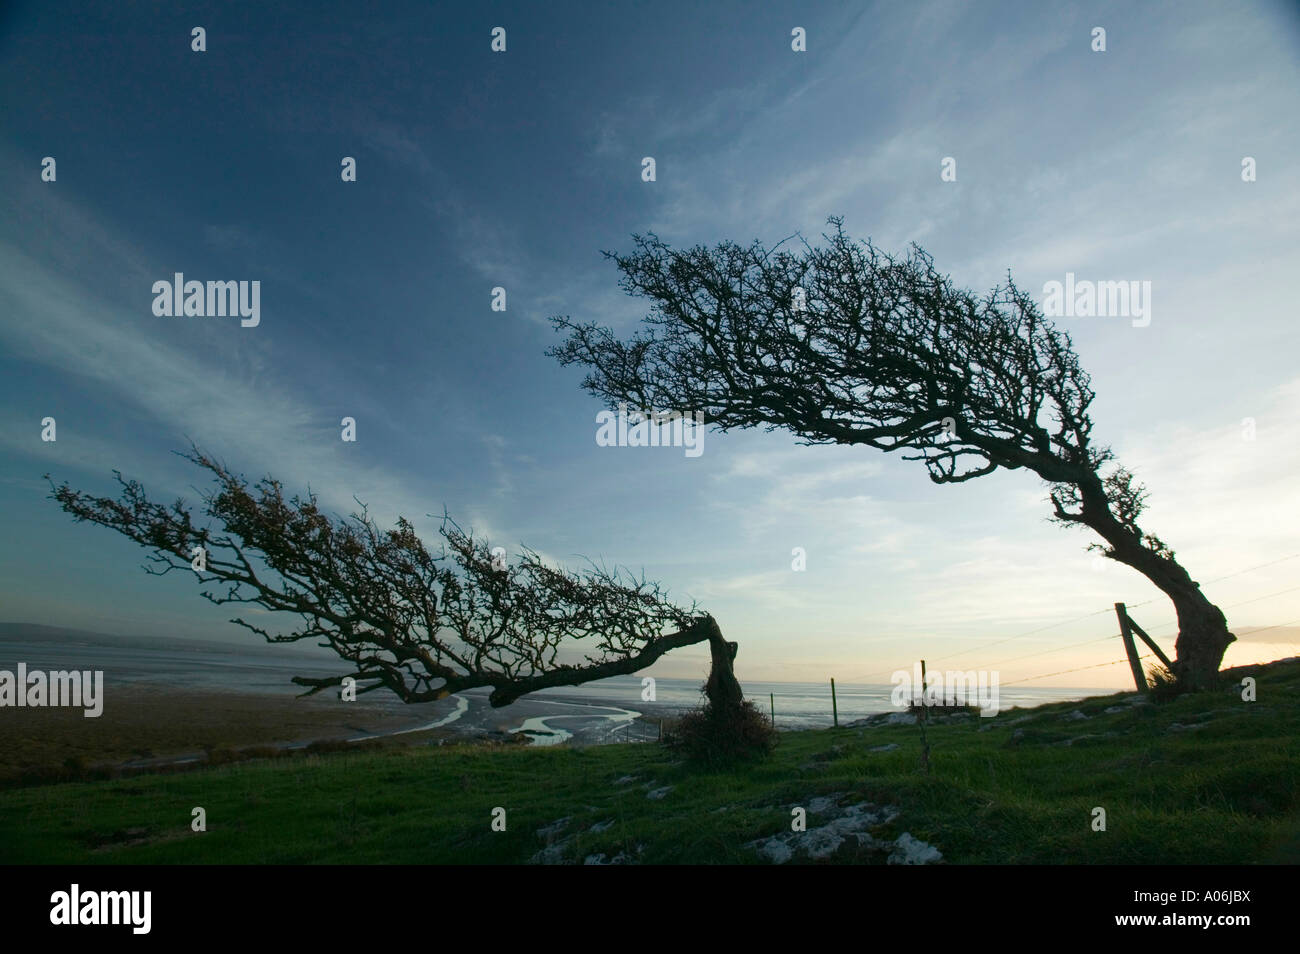 a Hawthorn tree bent by the wind,  on Humphrey Head Point, Grange Over Sands, Cumbria, UK - Stock Image